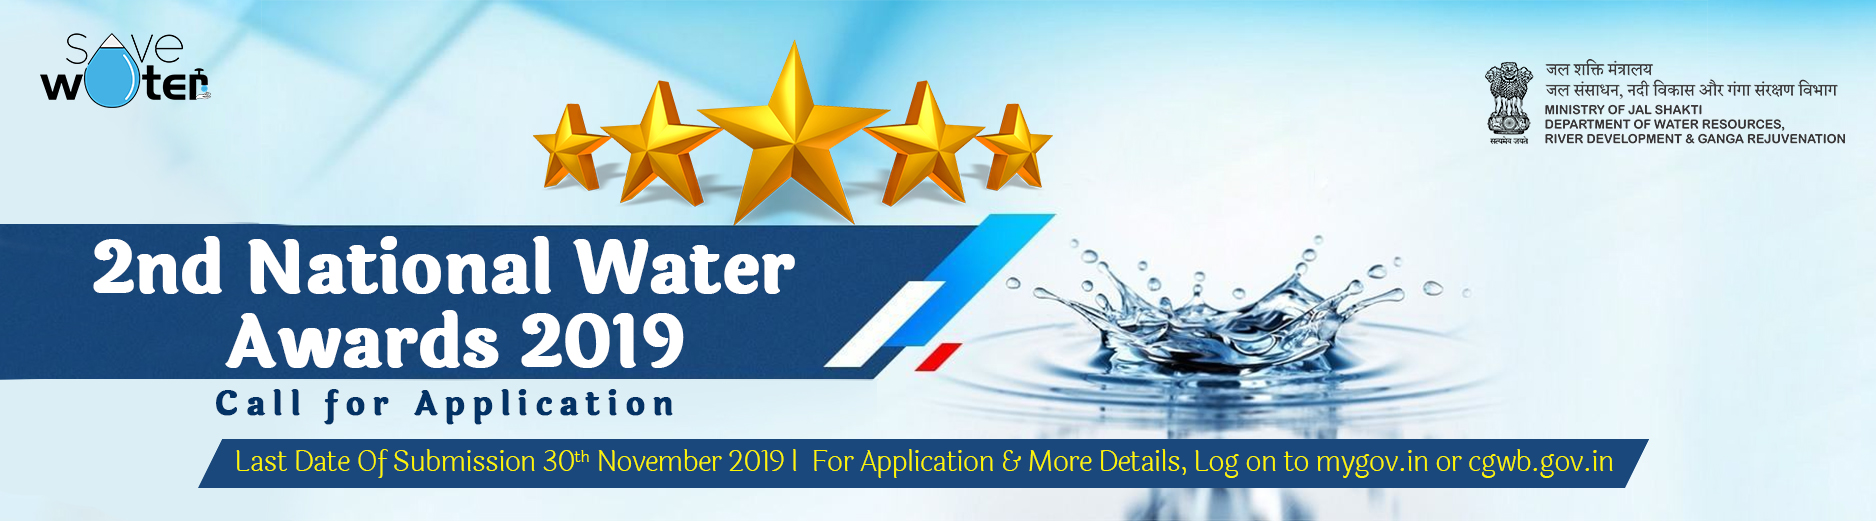 National Water Awards 2019